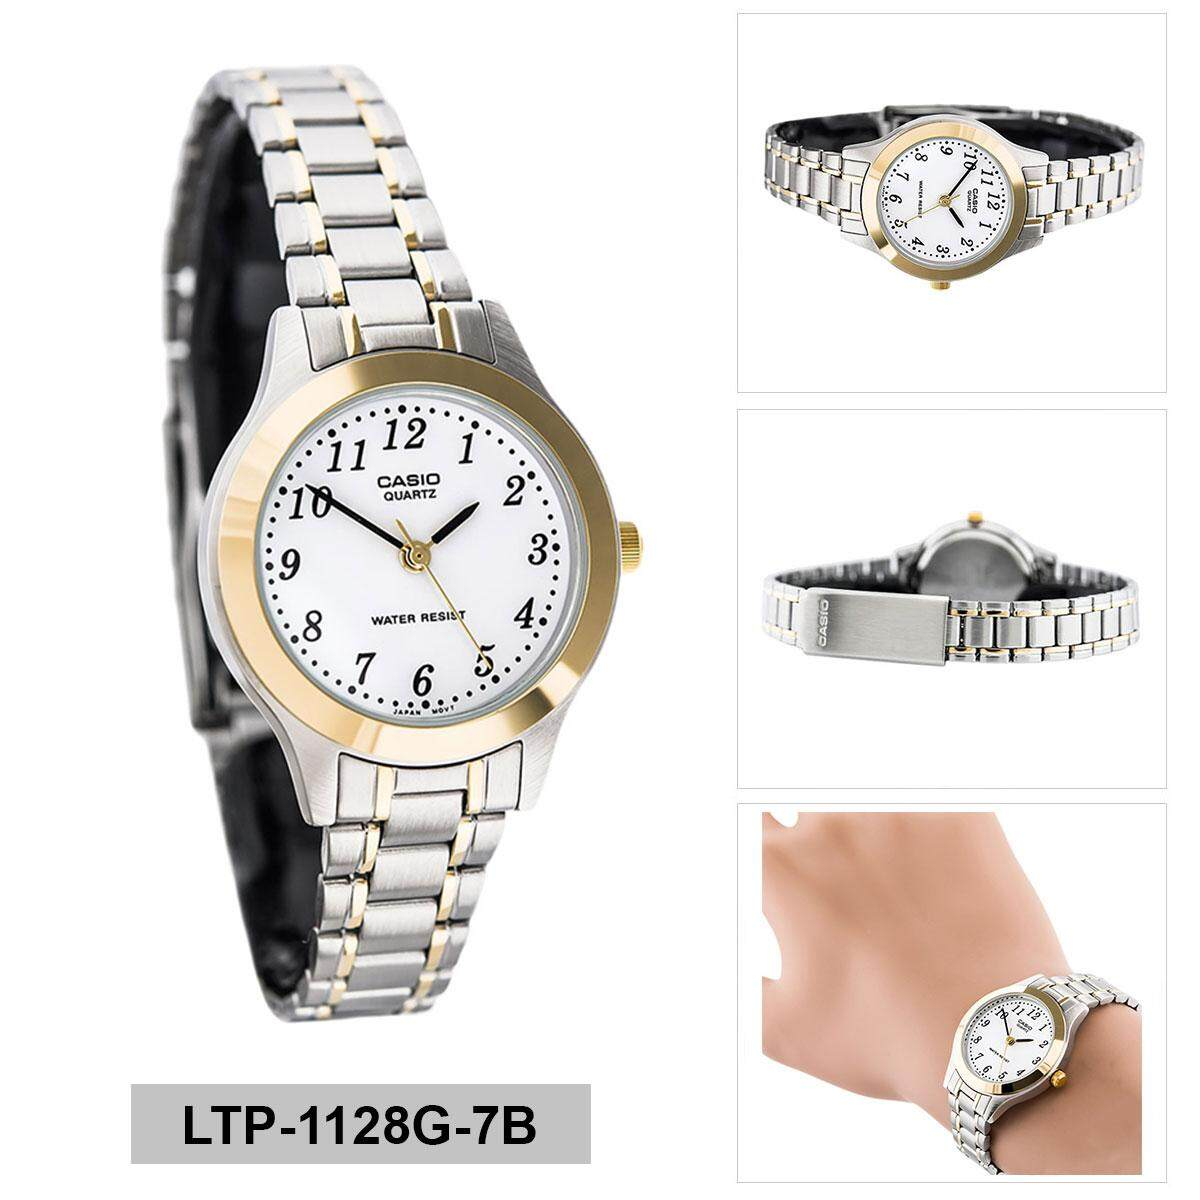 Features Casio Mtp 1141g 7b Men Analog Two Tone Stainless Steel Couple Dan Ltp 1183e 7adf Jam Tangan Black White Strap Leather Watch Standard Multicolored Case Bracelet